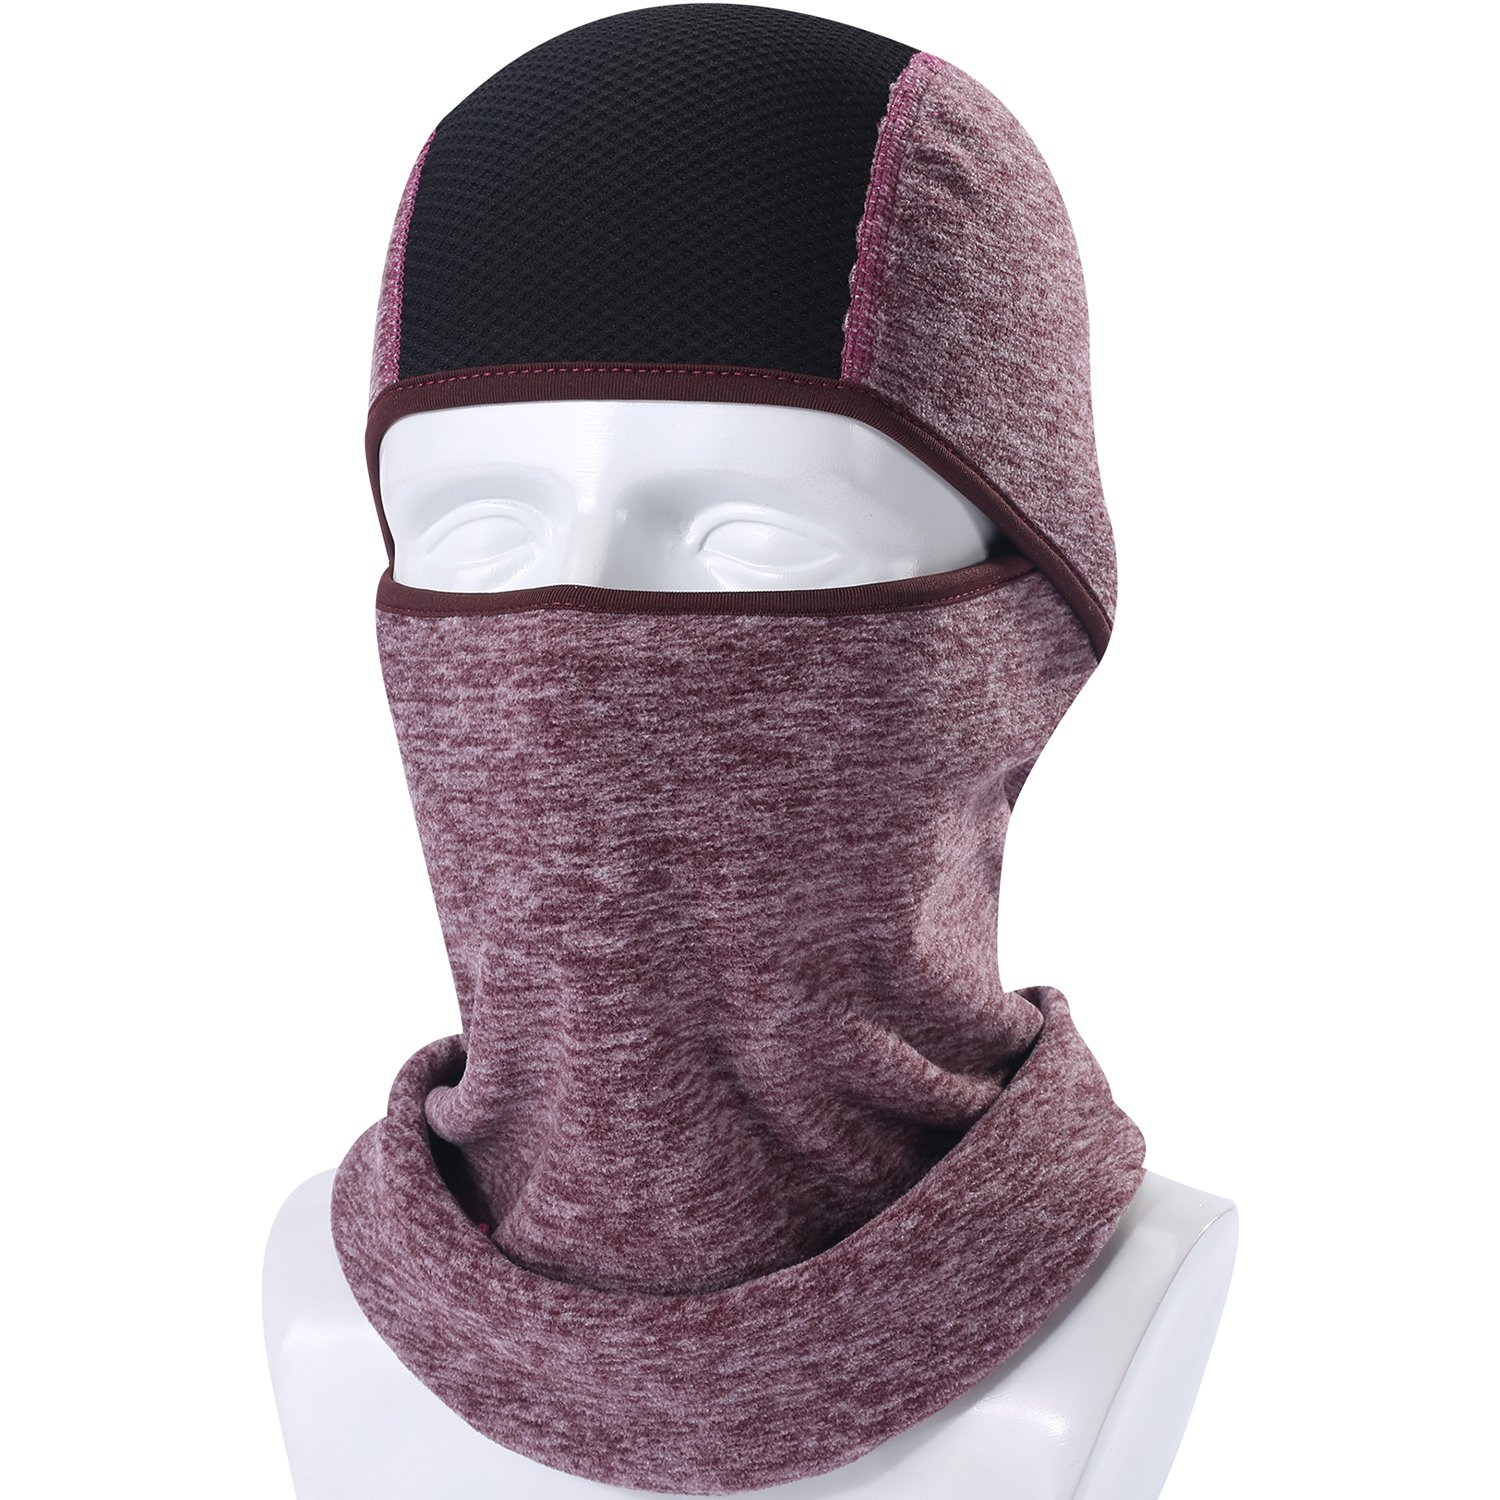 AXBXCX Balaclava Fleece Hood - Windproof Ski Mask - Cold Weather Face Motorcycle Mask Neck Warmer Cycling Skull Cap Thermal Scarf Winter for Running Snowboarding Fishing Brown